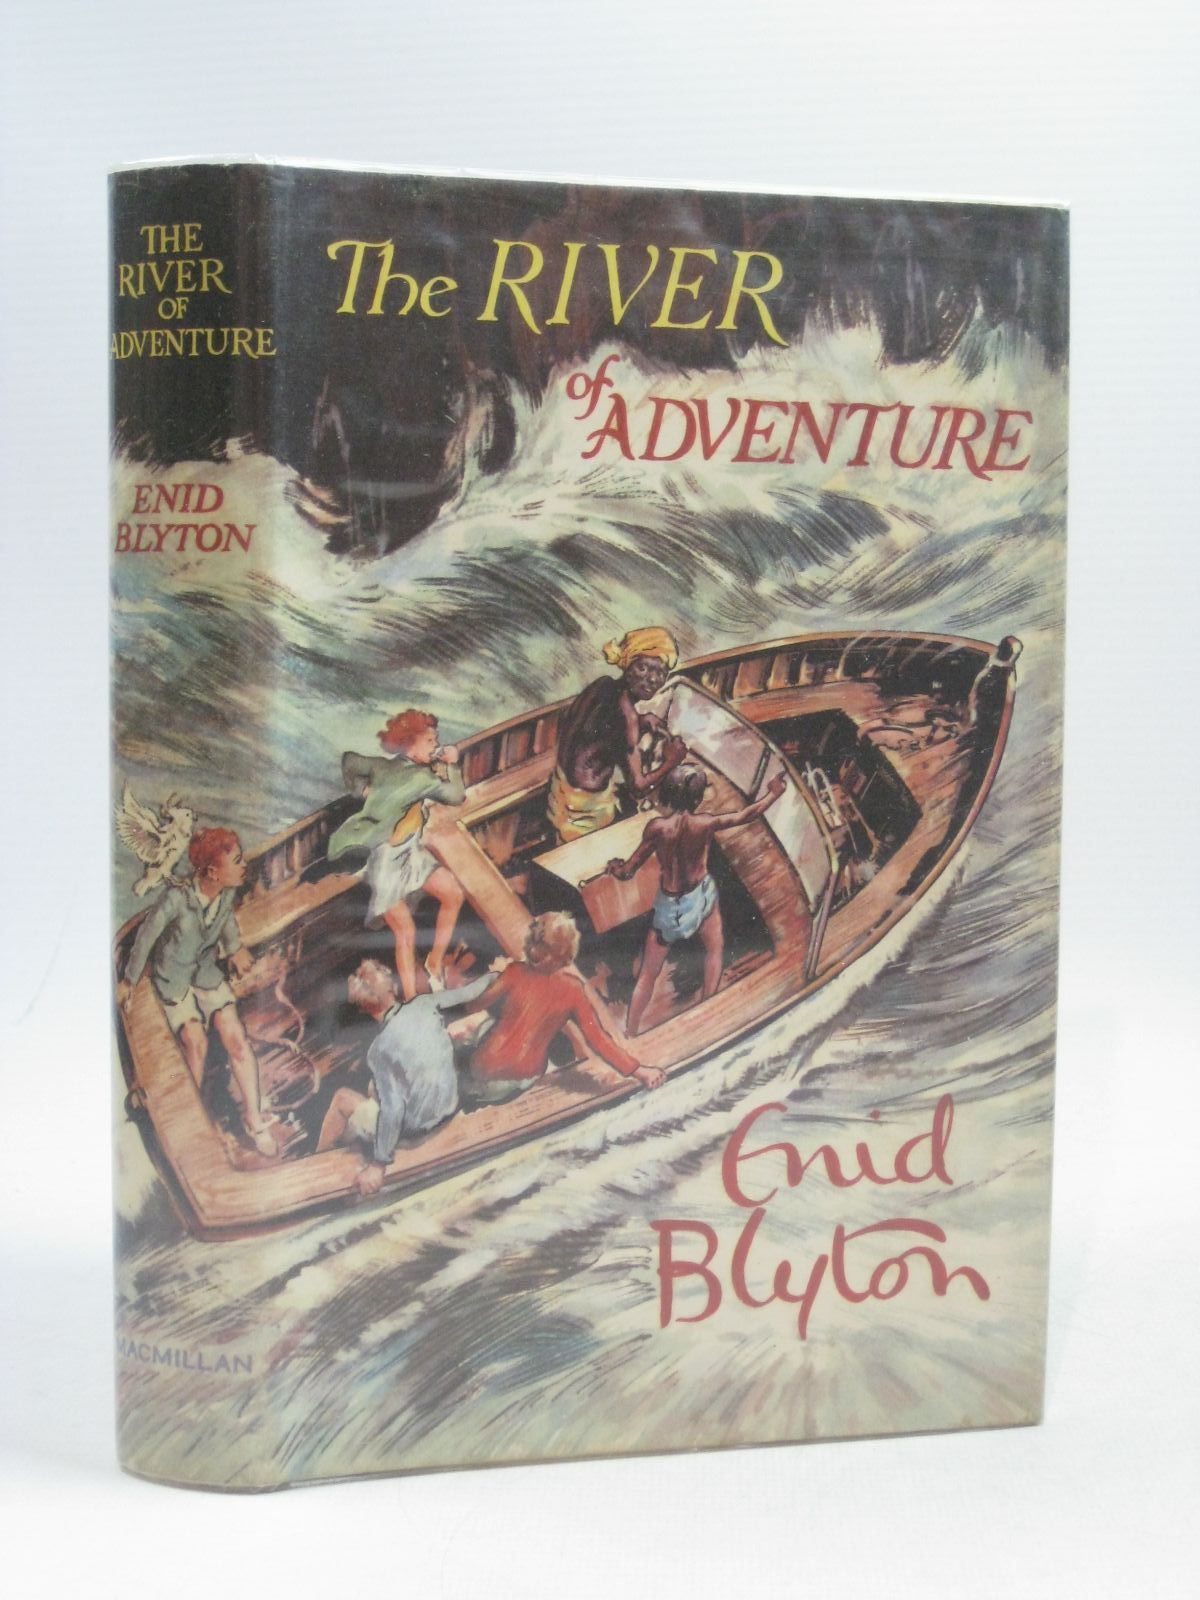 Cover of THE RIVER OF ADVENTURE by Enid Blyton